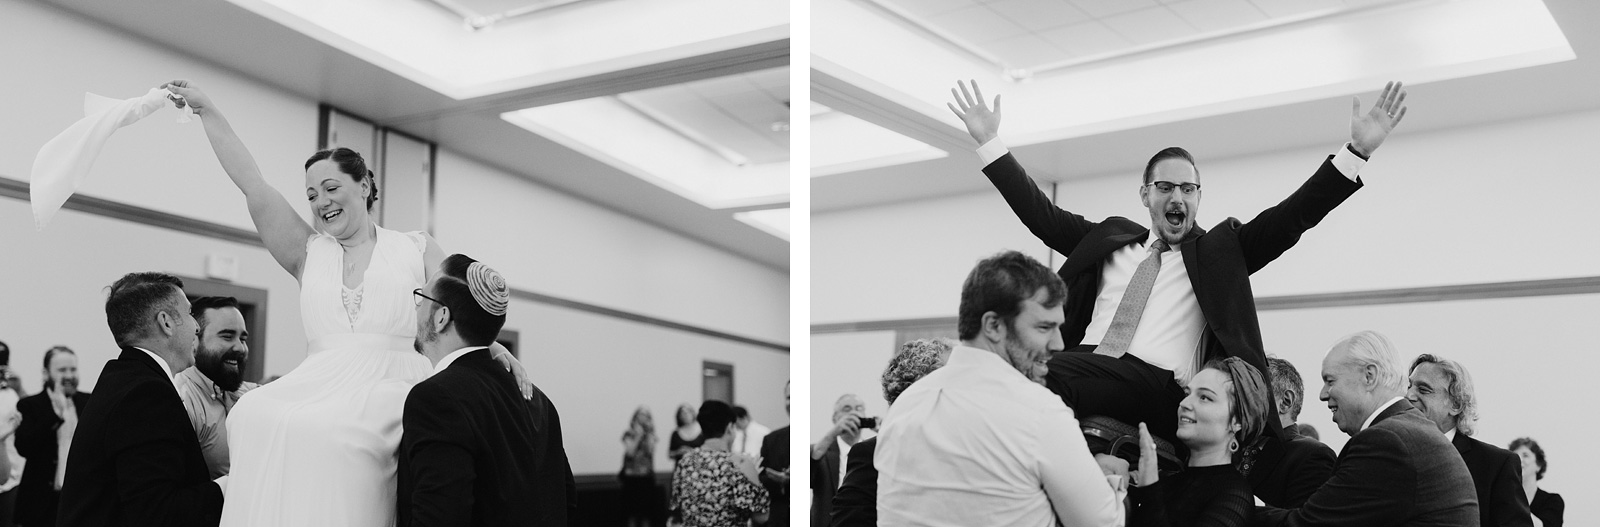 bride and groom dancing in the hora - Portland Wedding photography